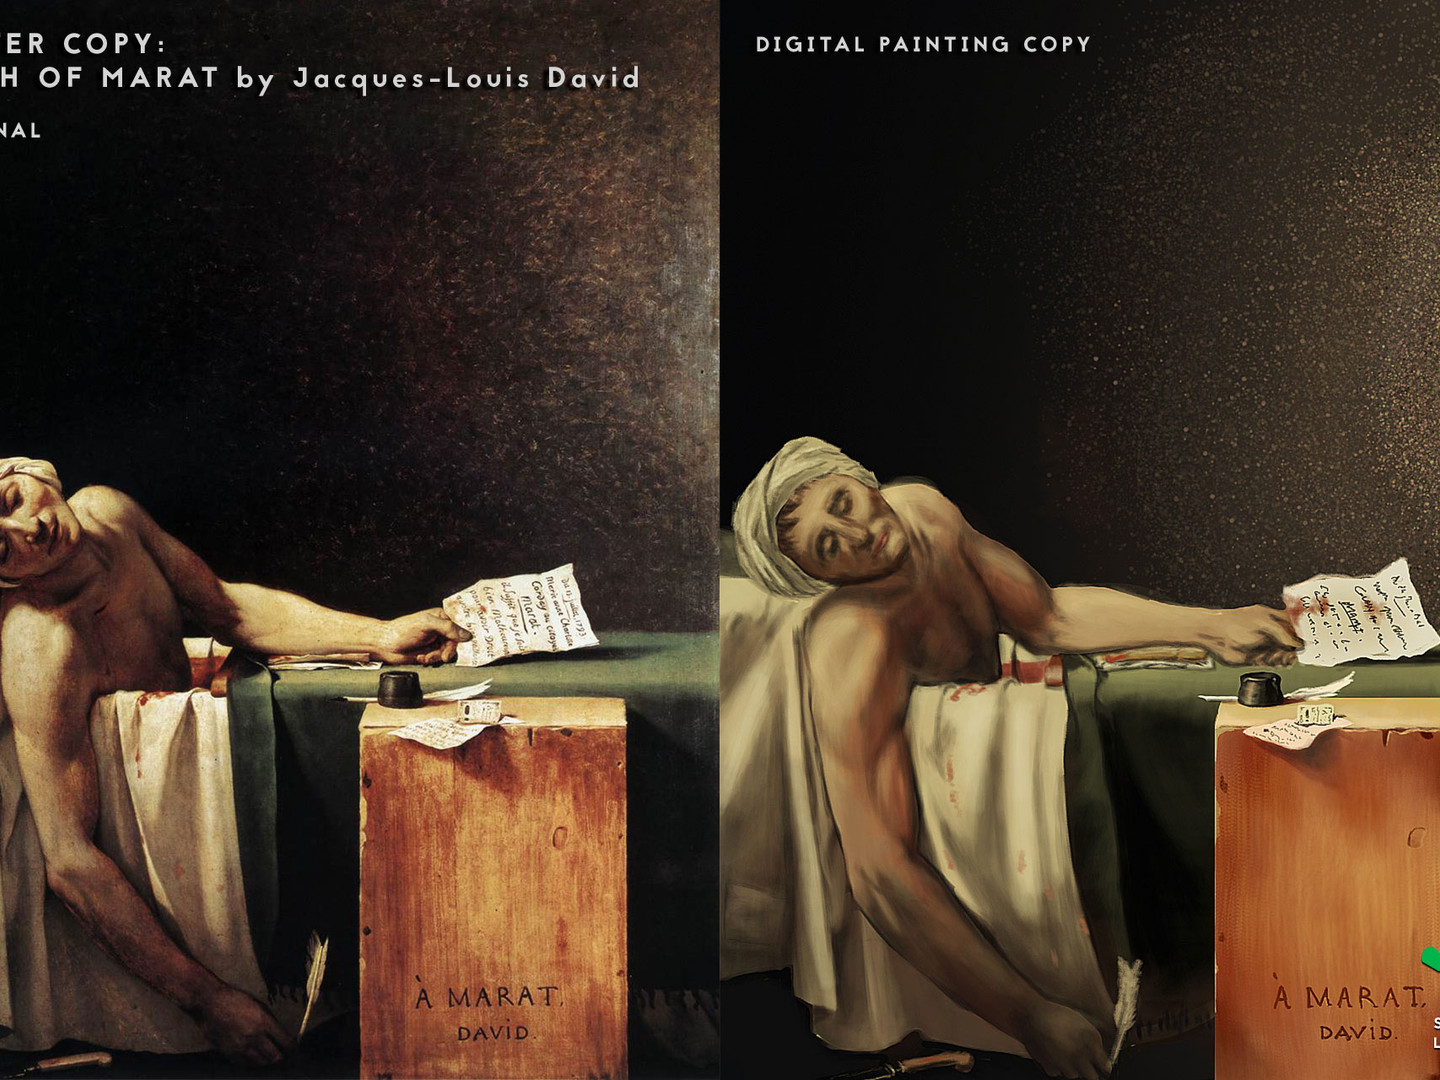 """Death of Marat"" Master Copy Digital Painting - Side-by-side"